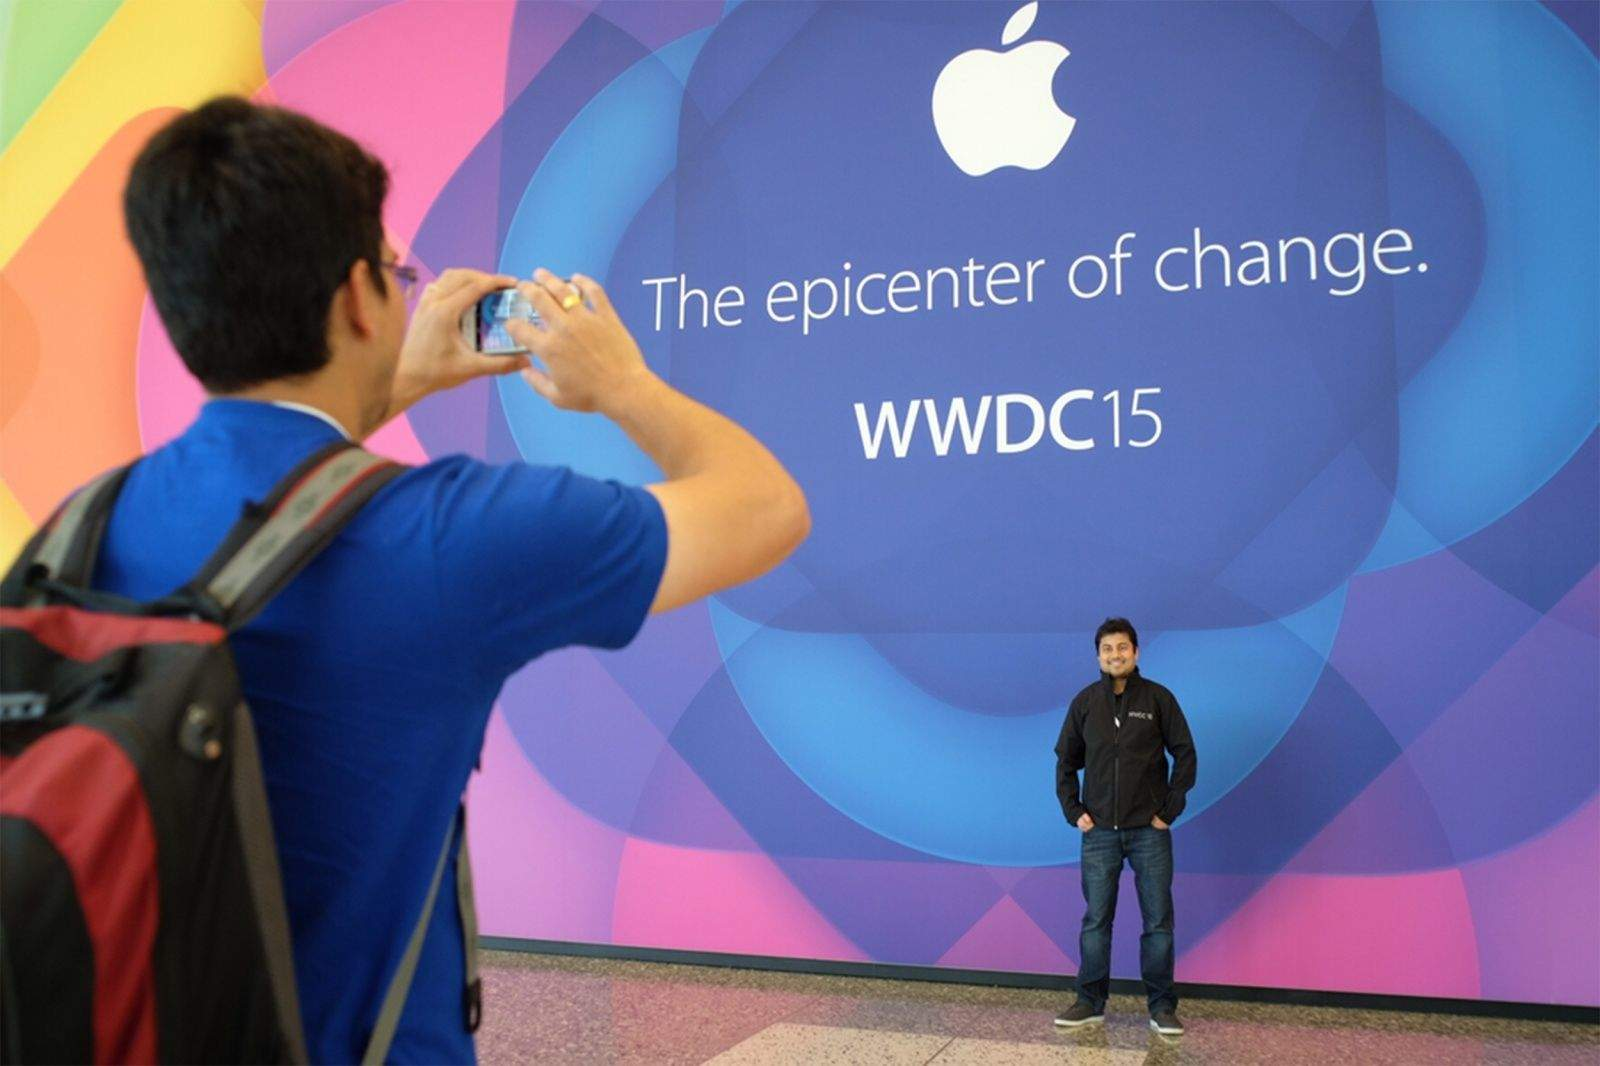 Apple's WWDC 2015 is revving up in San Francisco.